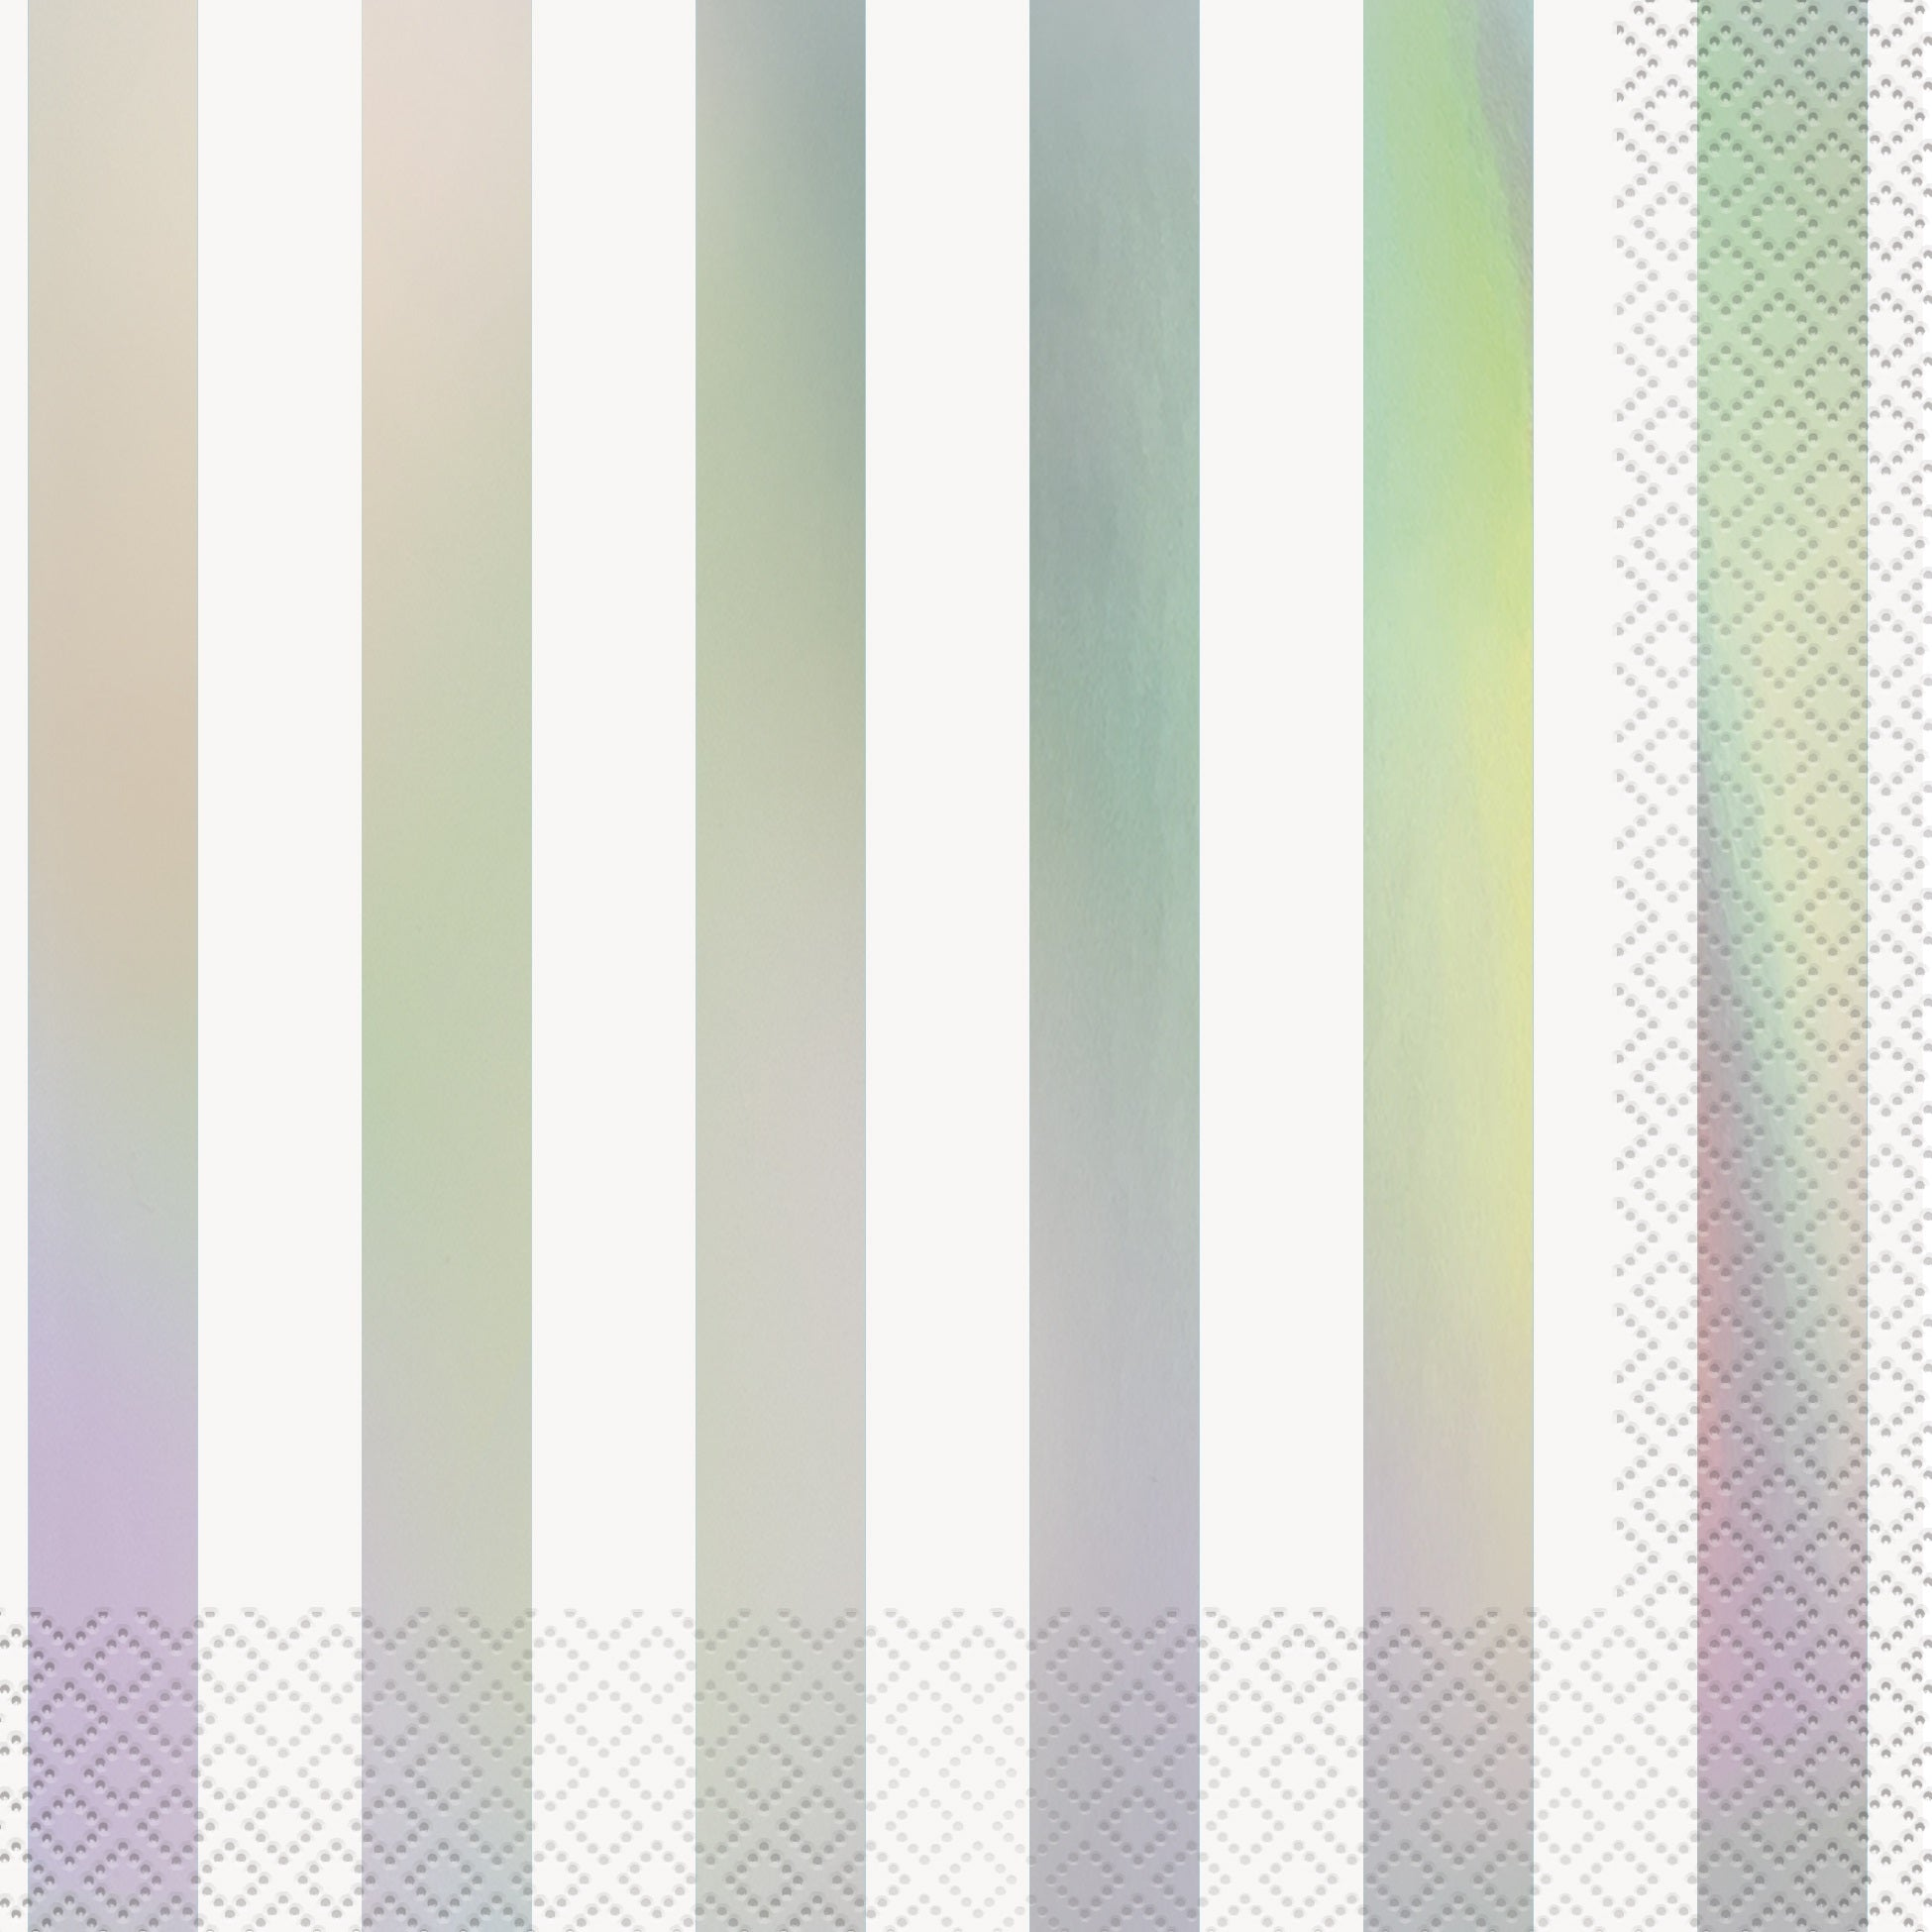 Iridescent Foil Stripe Napkins - Uk Baby Shower Co ltd